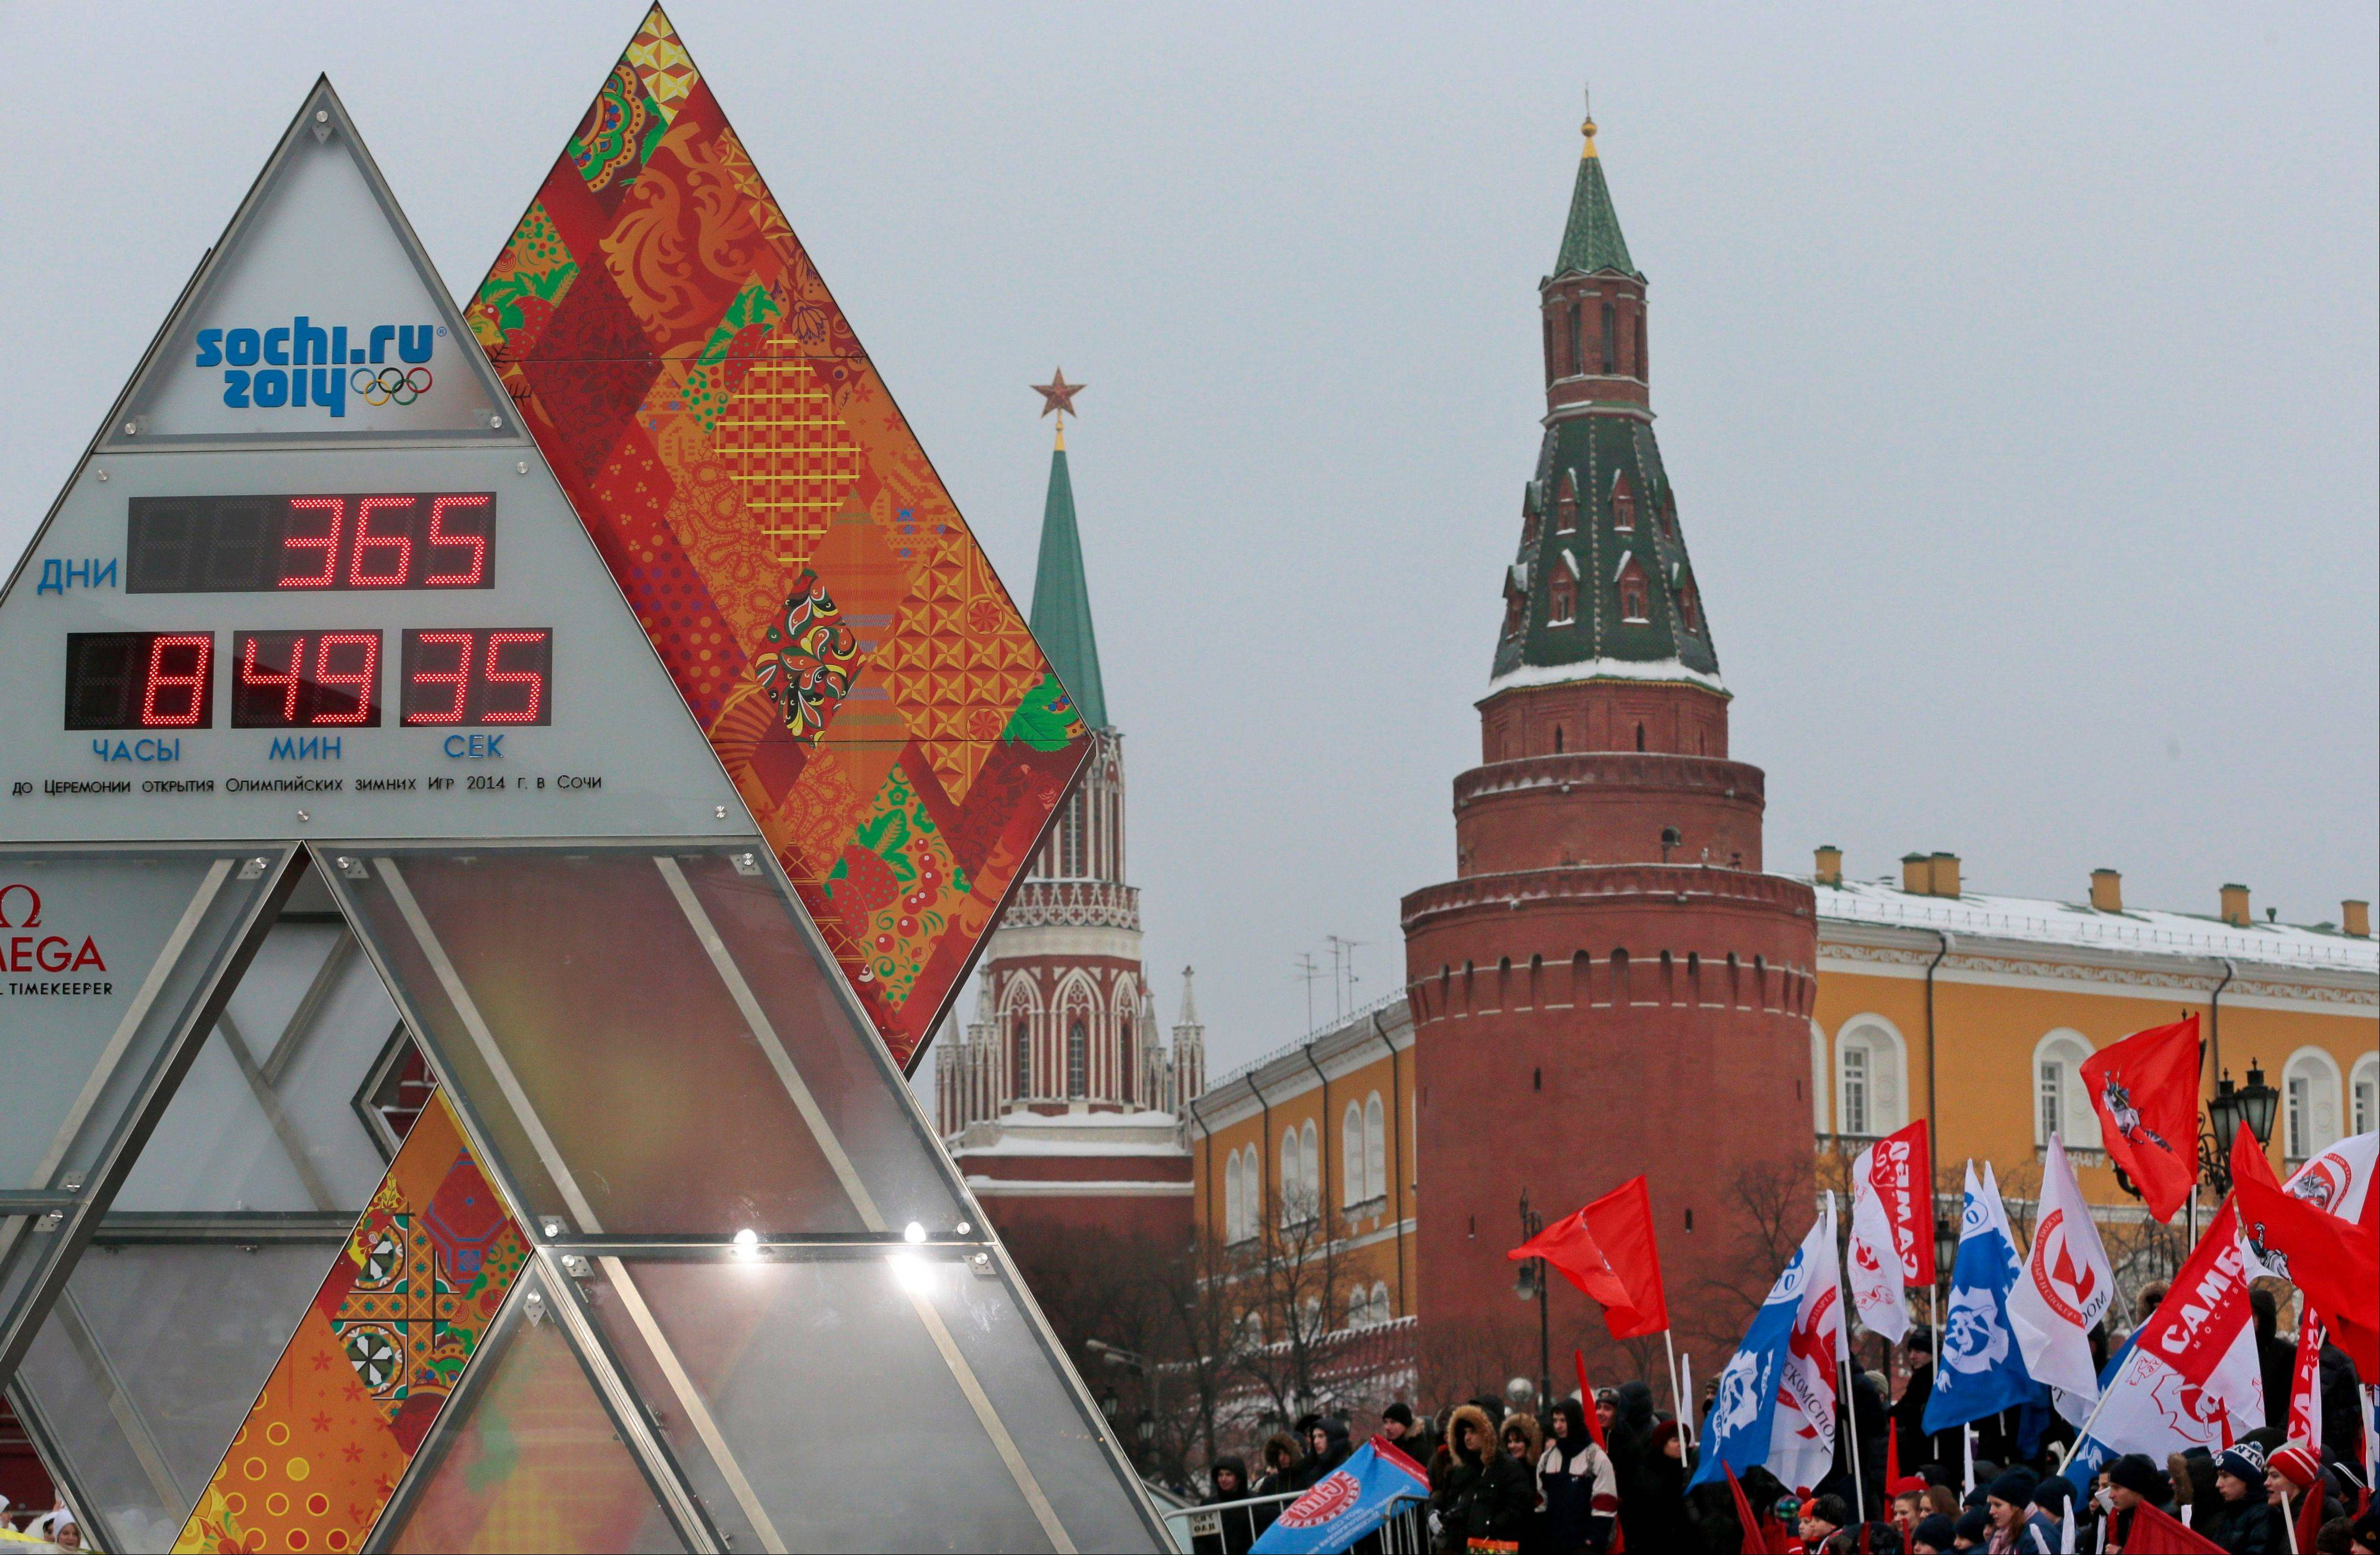 A crowd of sports enthusiasts waving Russian and Moscow flags surround the one-year countdown clock for the upcoming 2014 Sochi Olympics in Moscow, Russia.